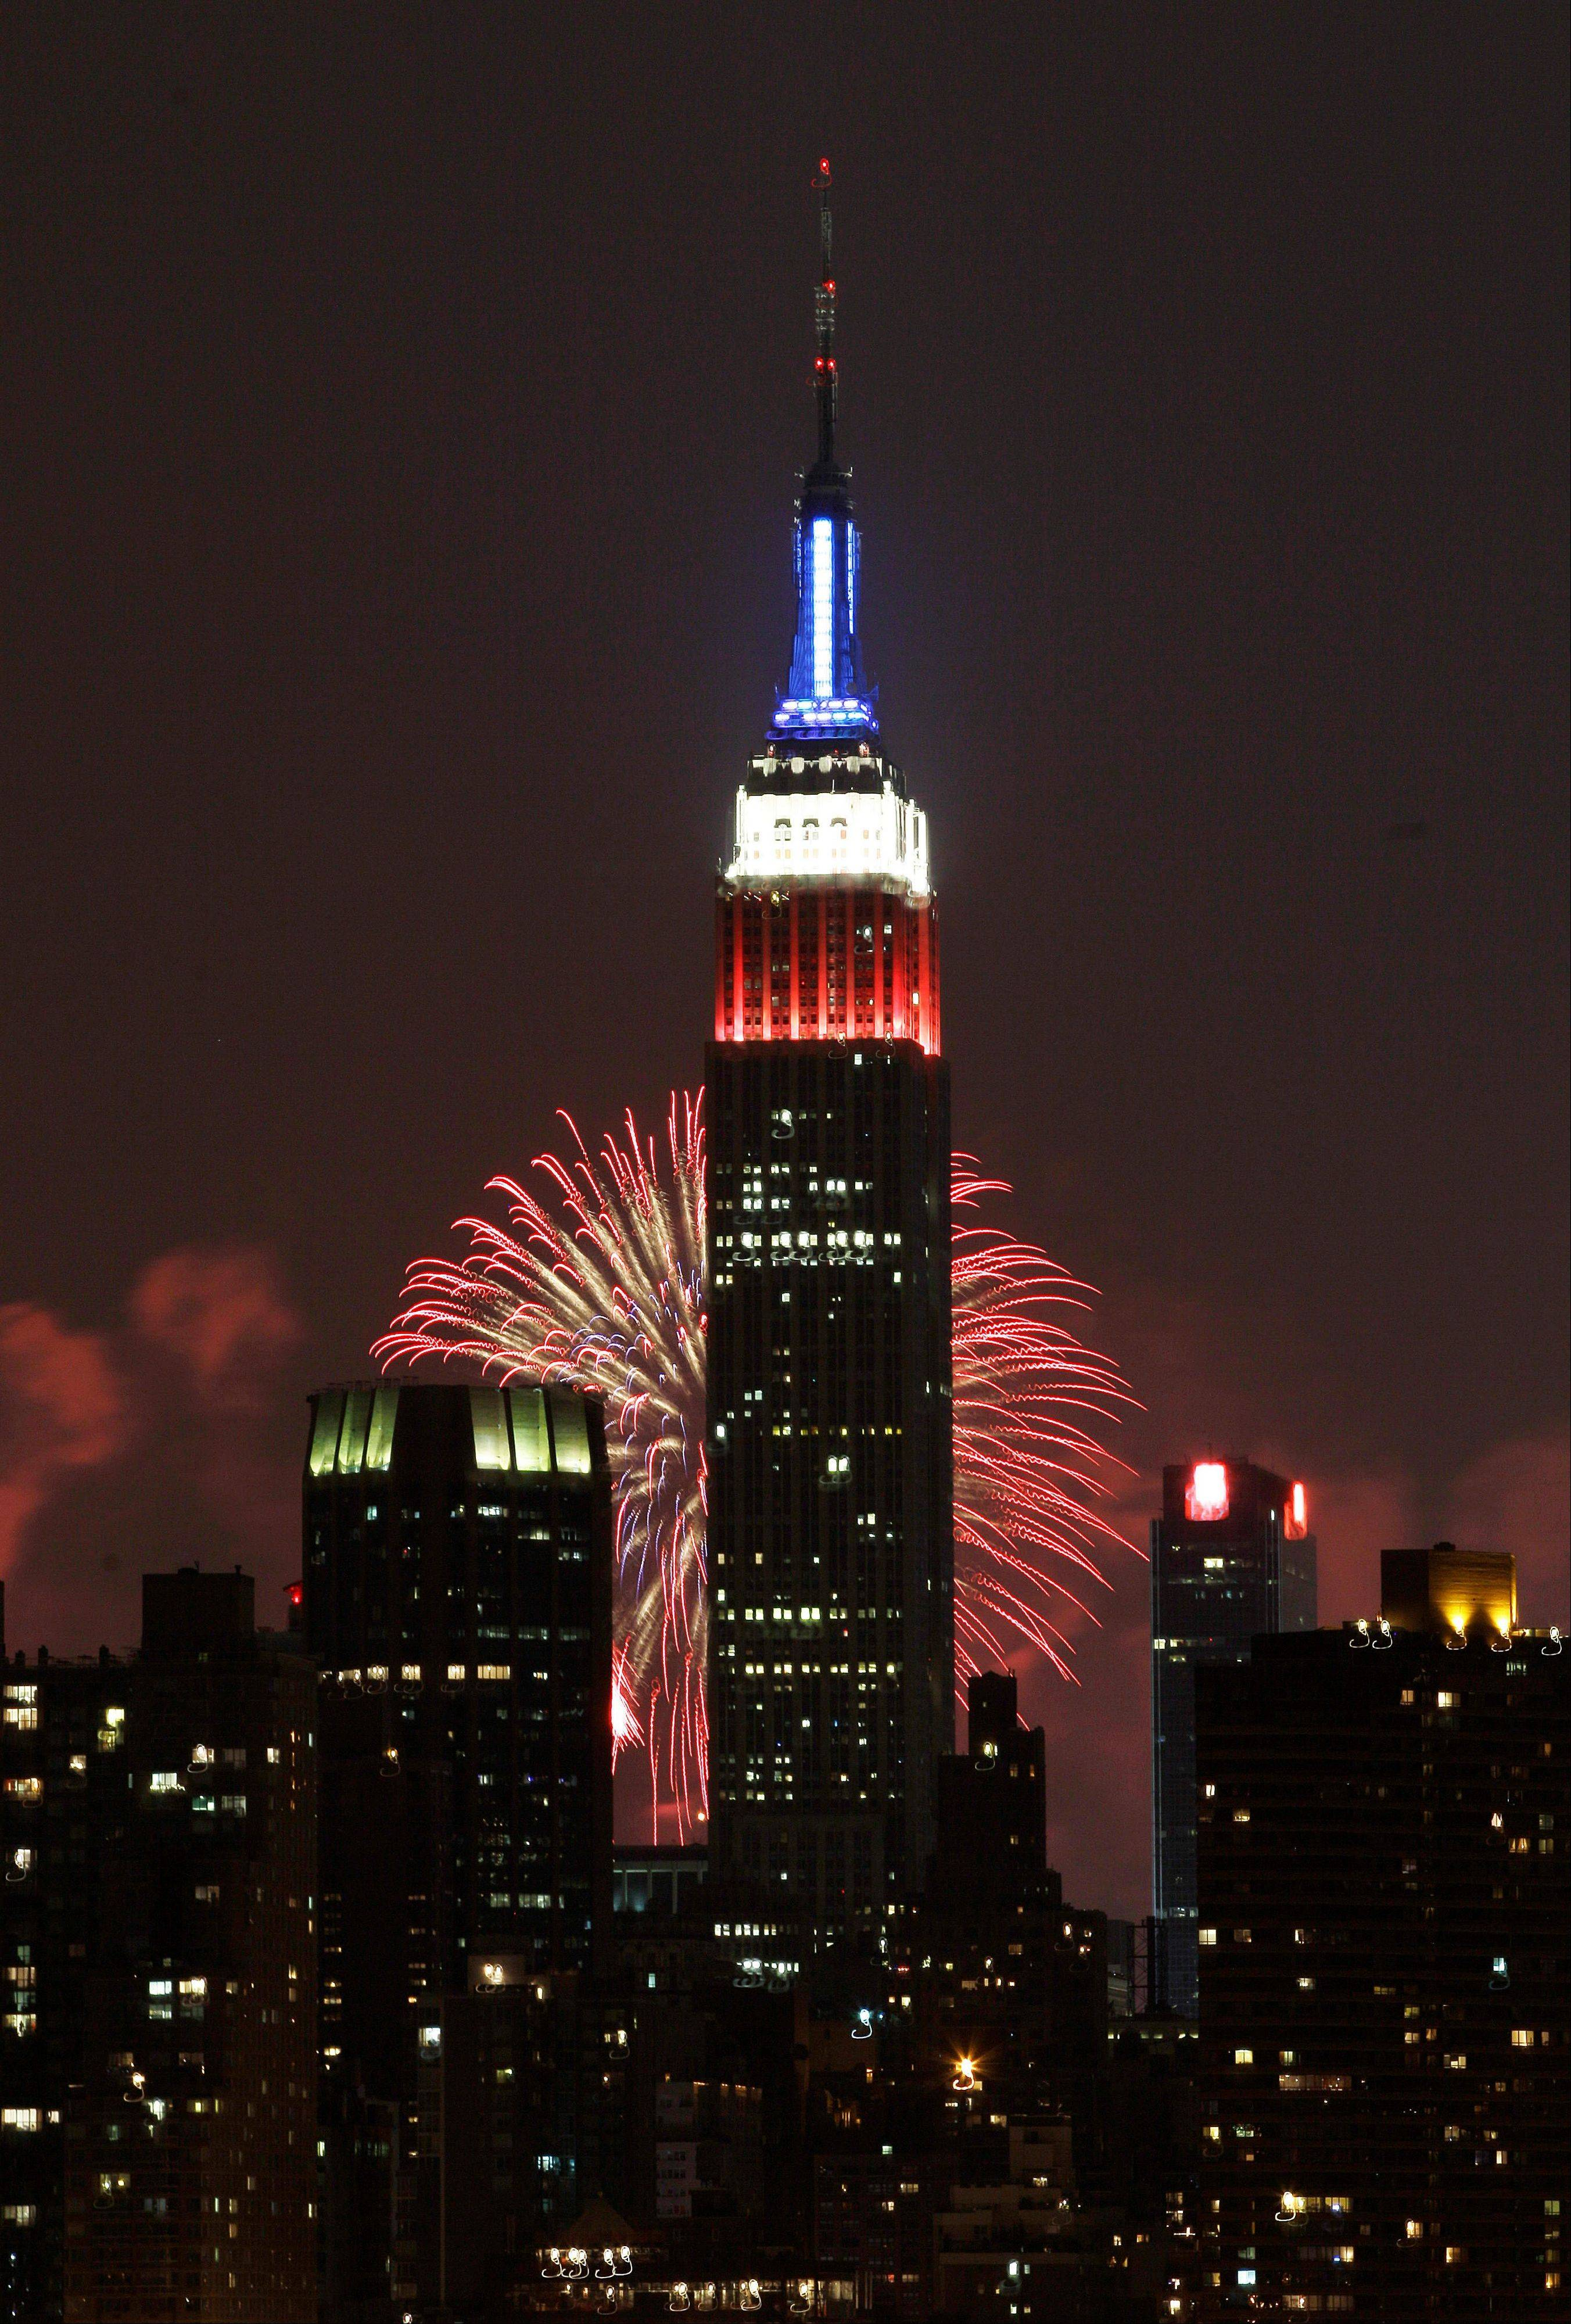 The Empire State Building, illuminated with red, white and blue lights, is seen from the Queens borough of New York, backlit by fireworks lighting up the sky over the Hudson River, during the Macy's Fourth of July fireworks show Wednesday, July 4, 2012, in New York.